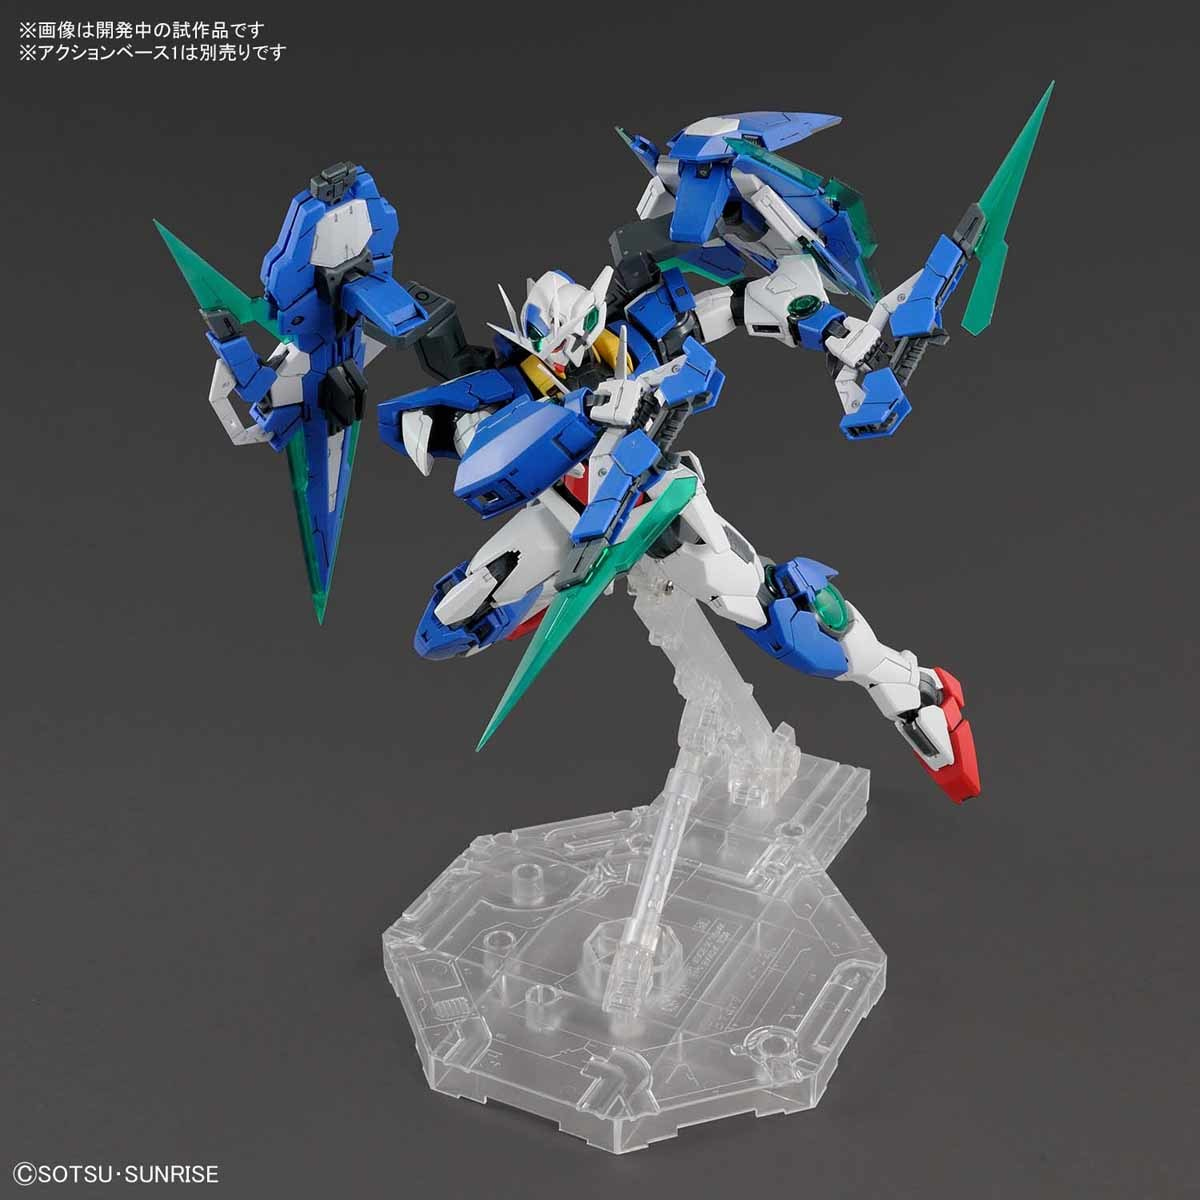 MG 1/100 00 Quanta Full Saber attack pose 2